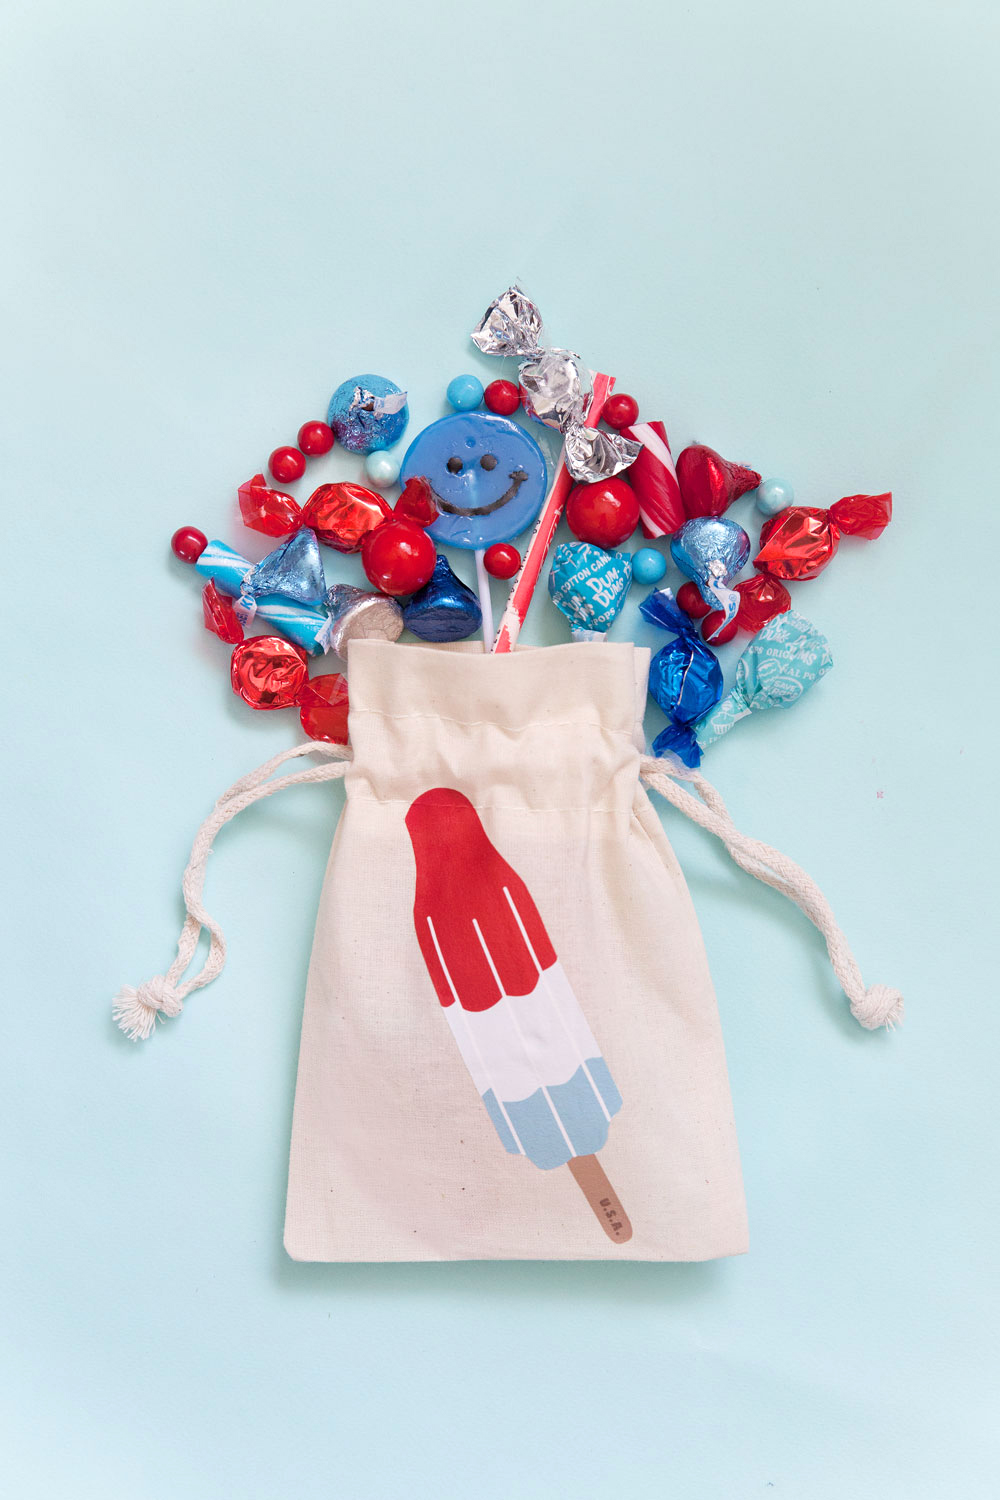 Diy 4th Of July Goodie Bags With Free Printables From Tell Love And Party